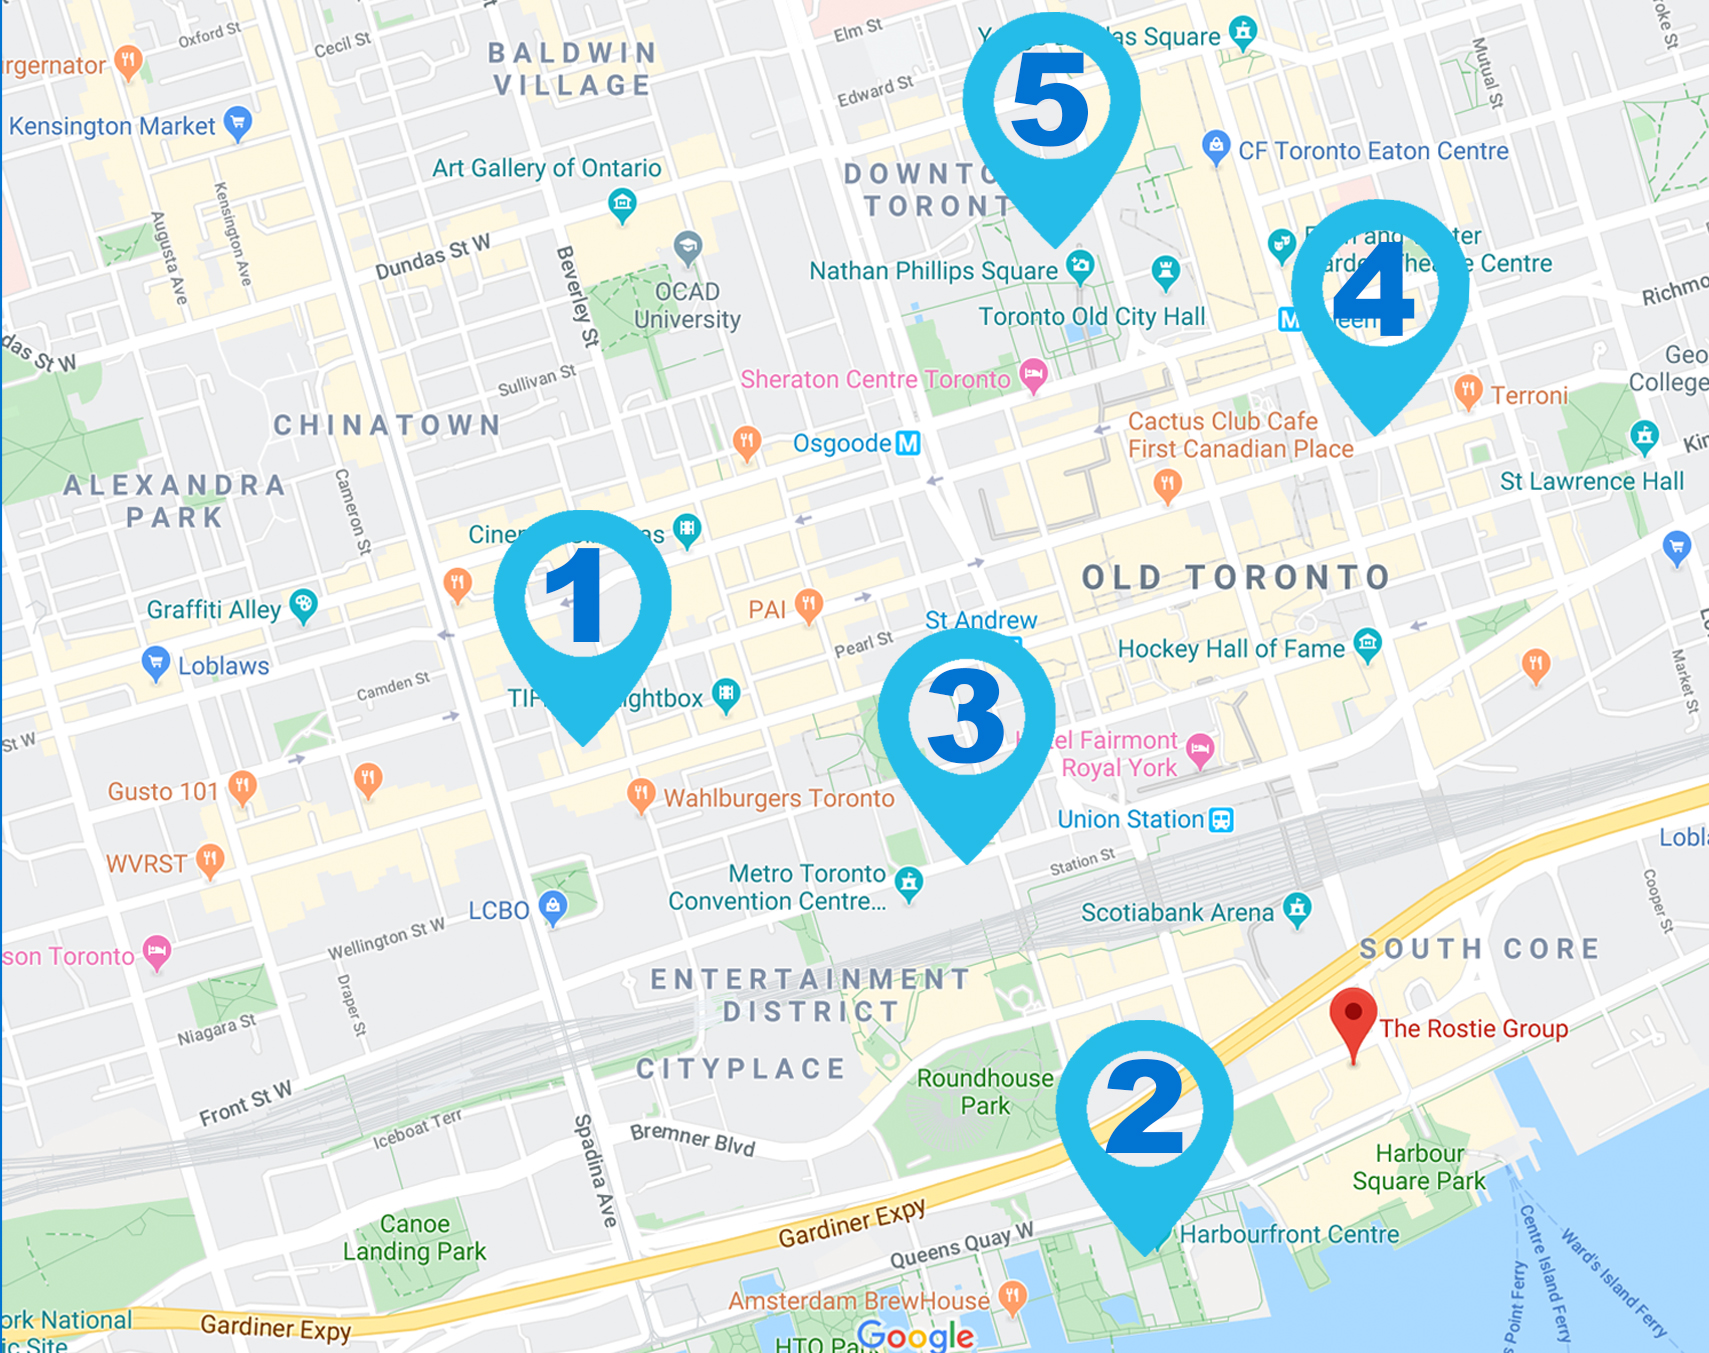 Rostie Group Scoop Map of events in Toronto in February